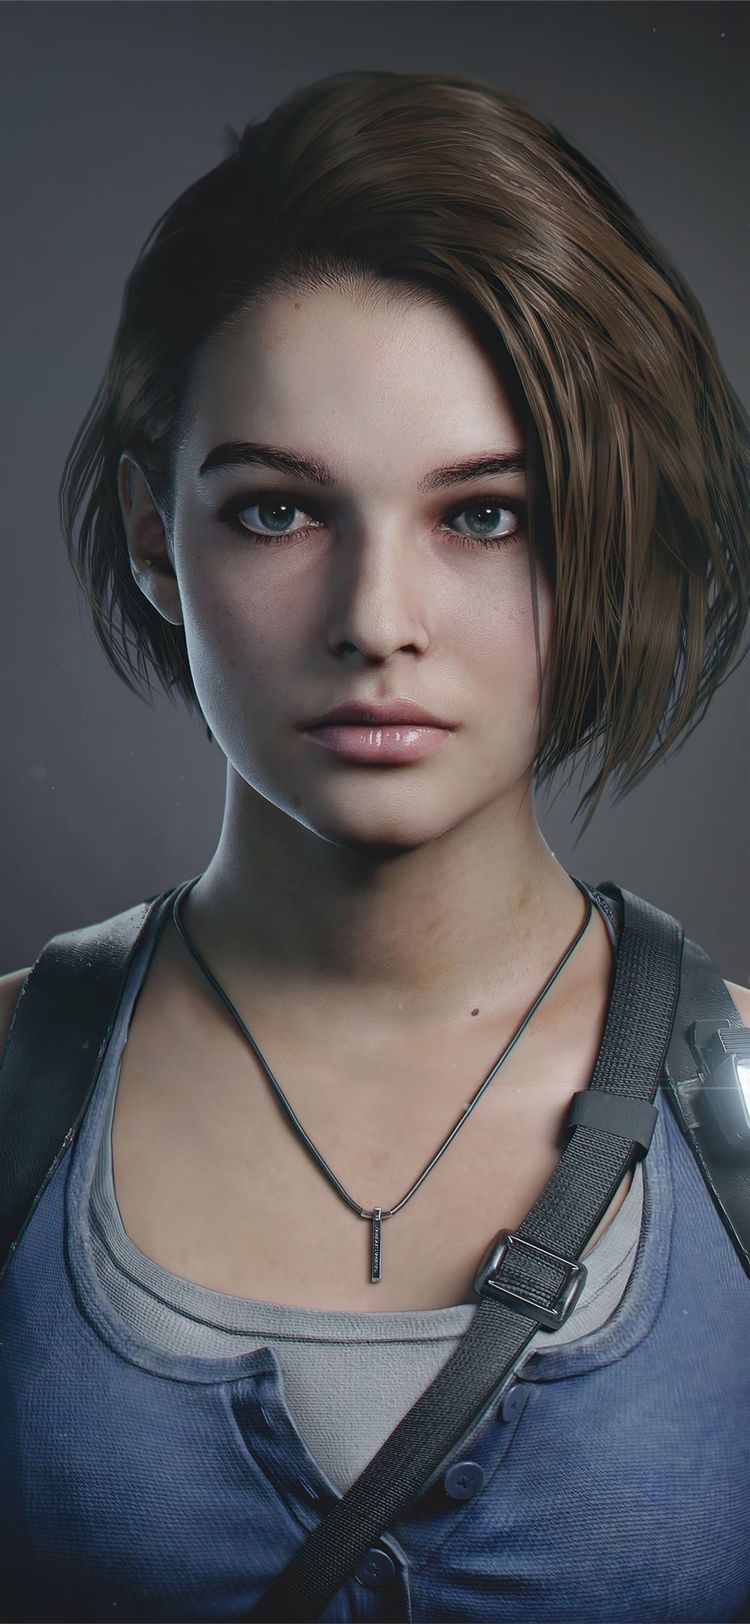 Pin by Rk on Portraits in 2020 Resident evil, Valentine